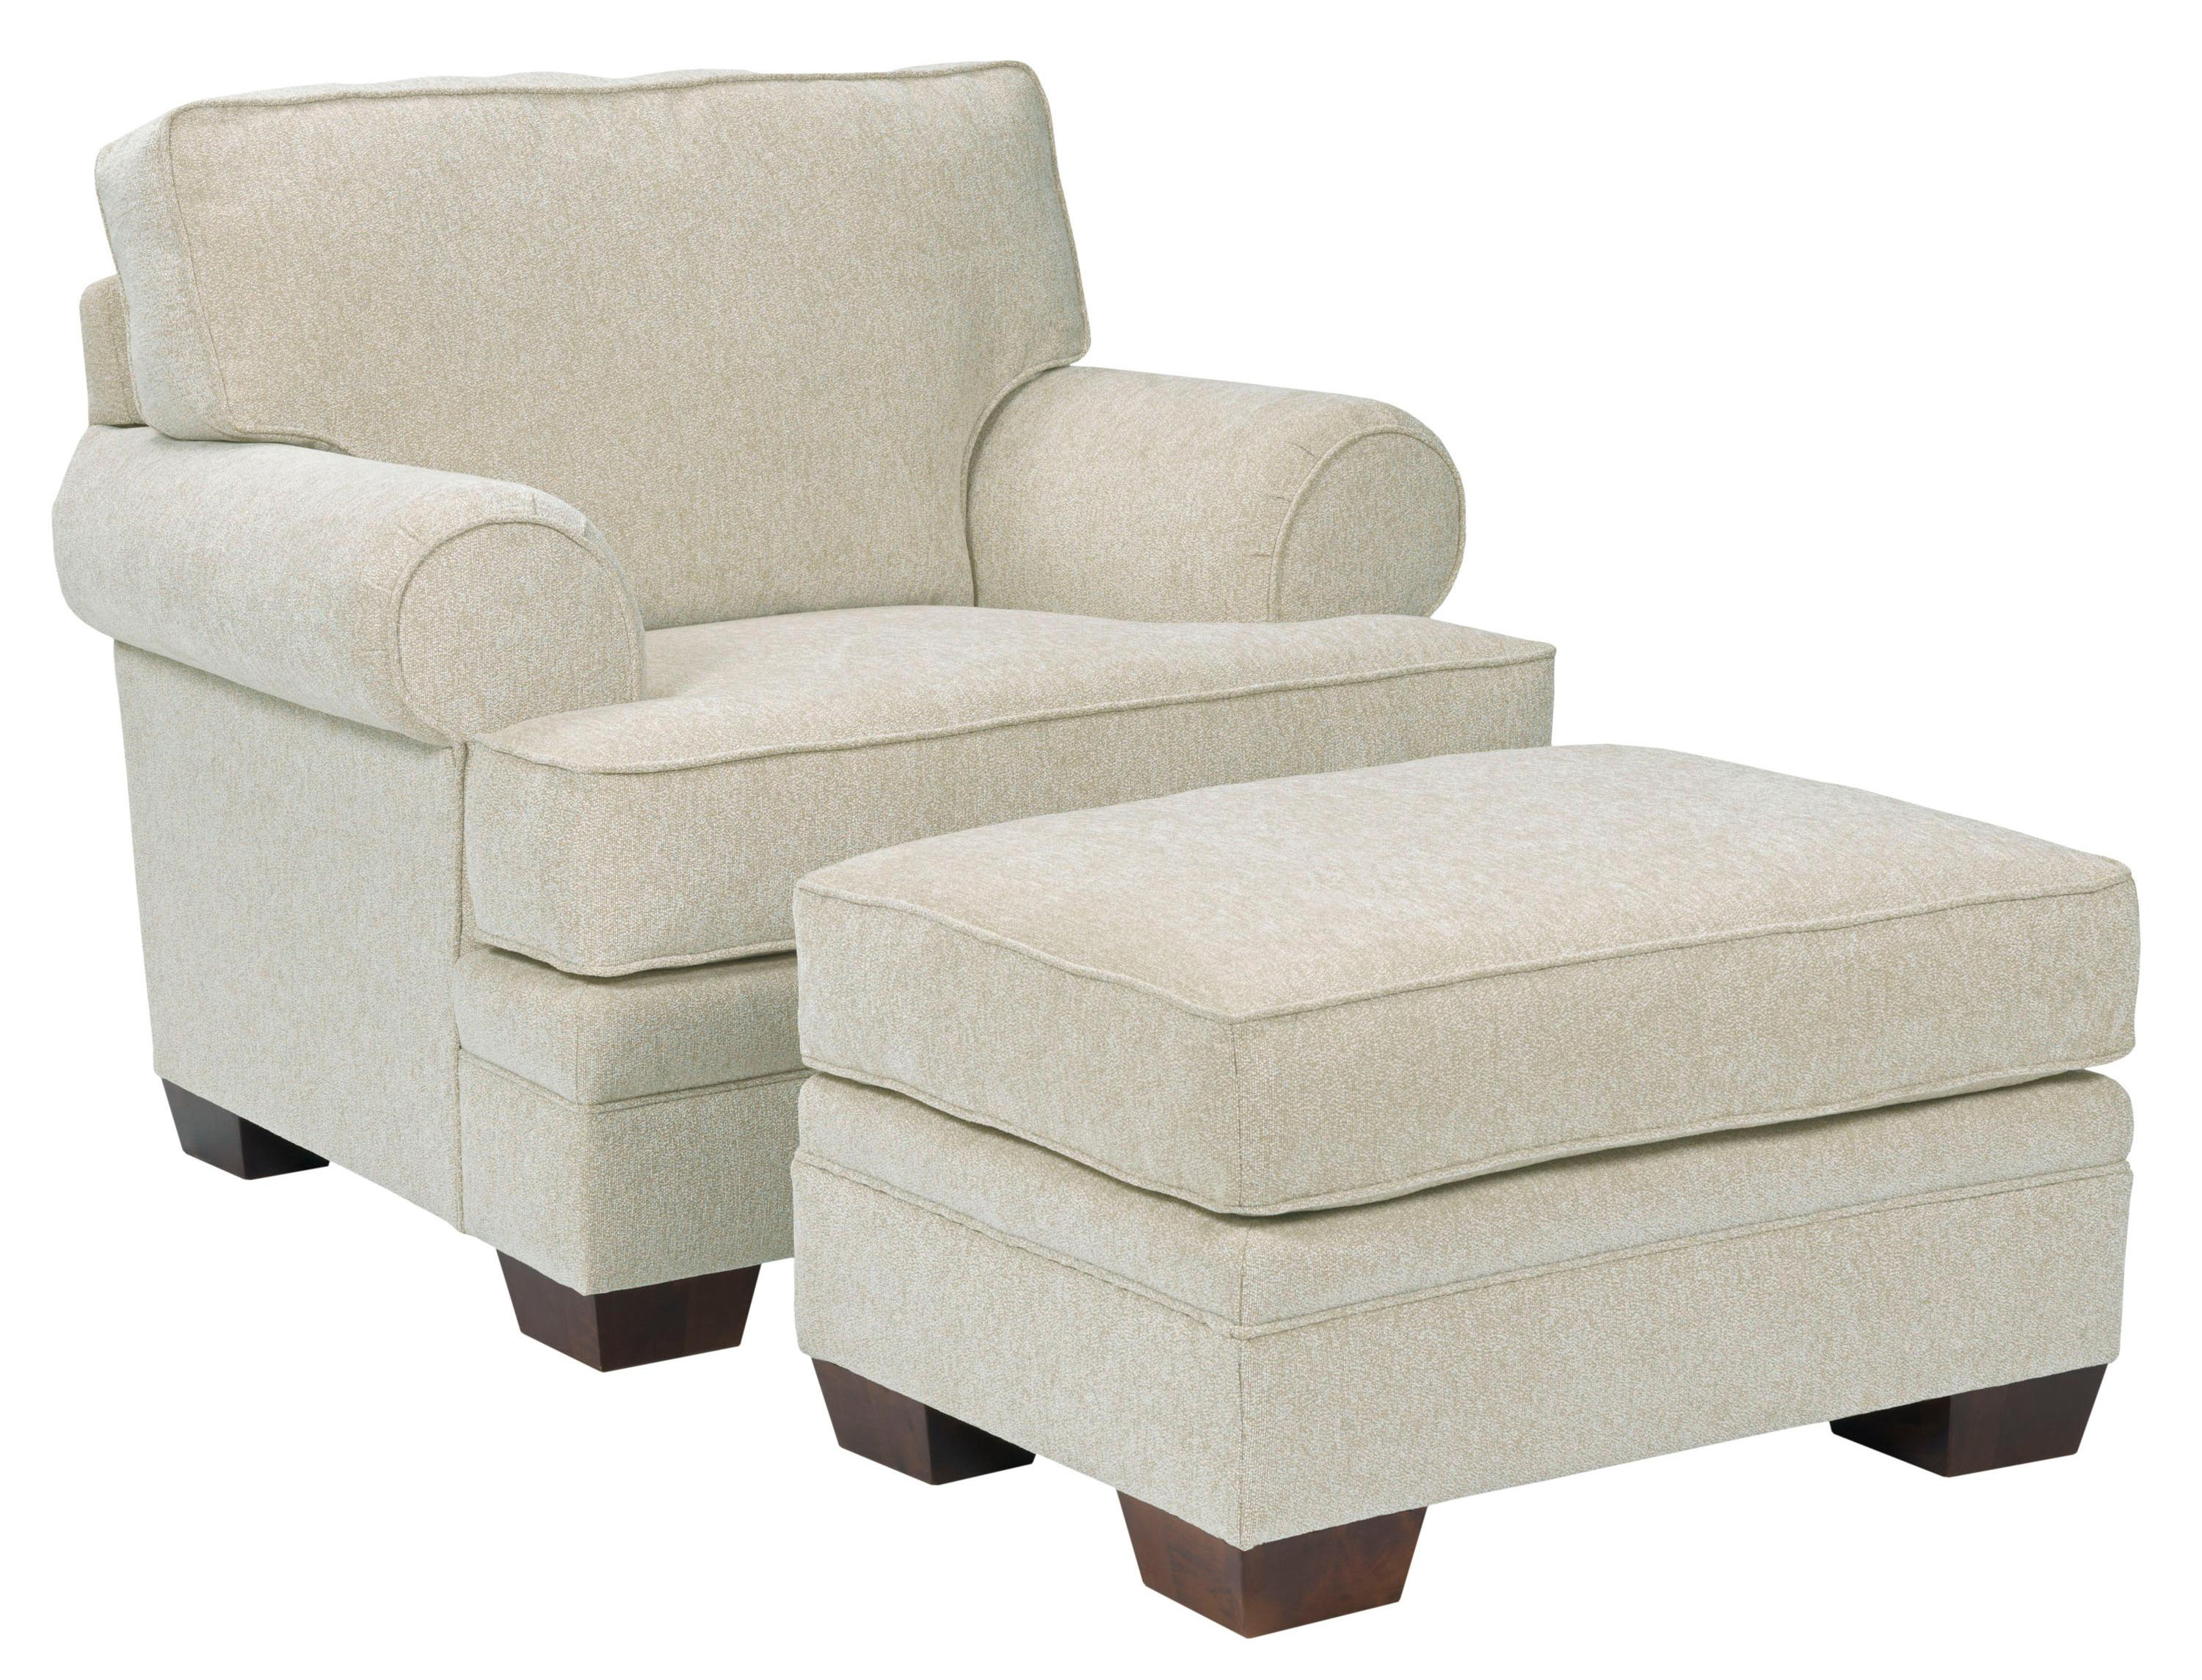 Broyhill Furniture Landon Transitional Chair and Ottoman Set - Item Number: 6608-0+5